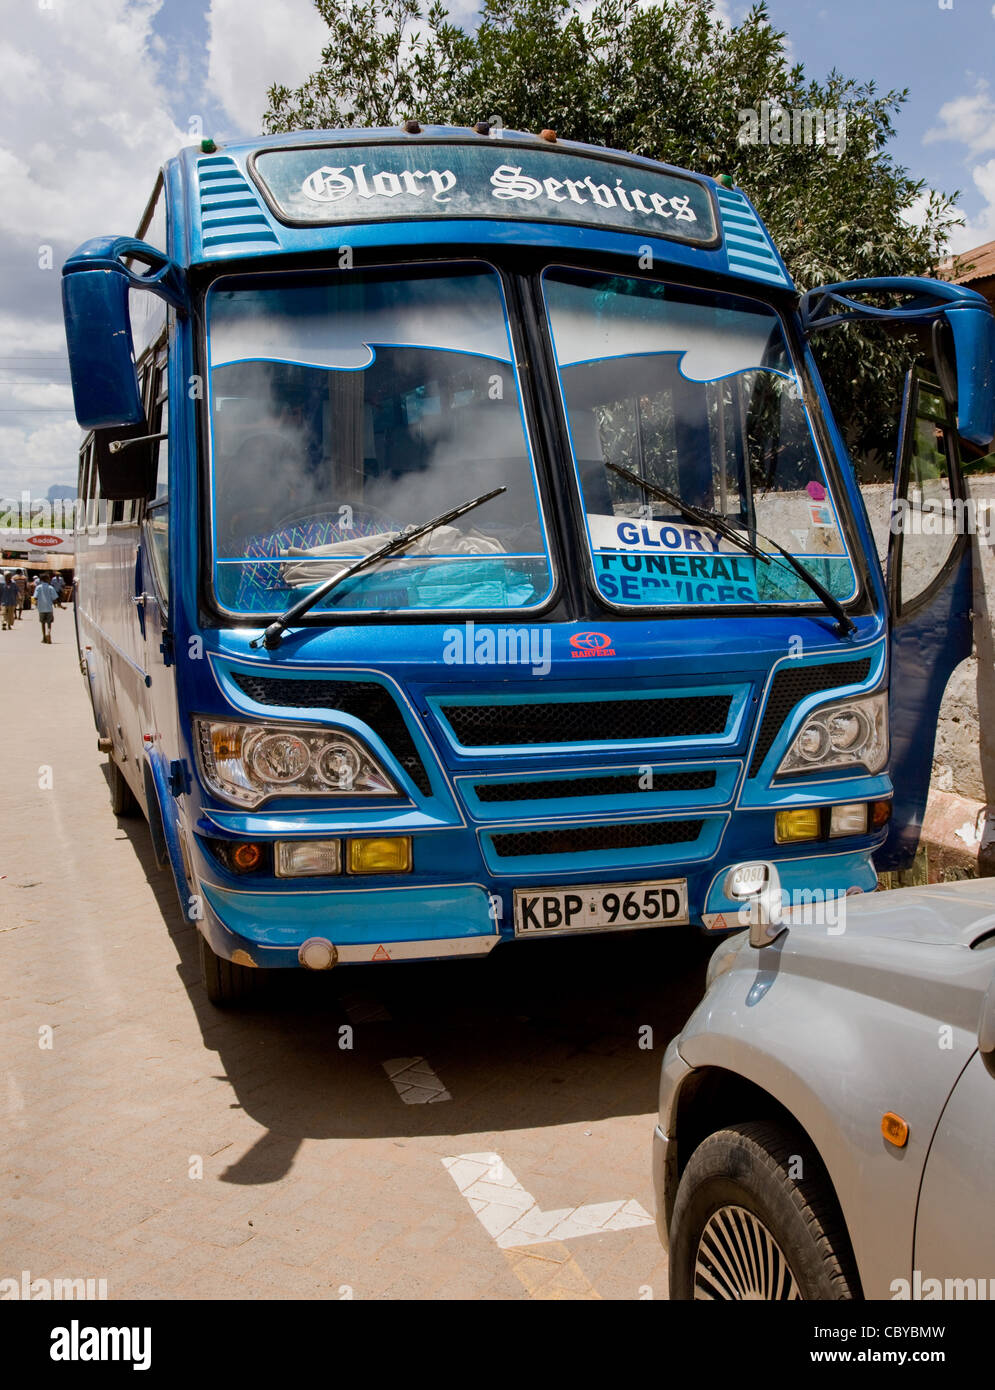 Glory Funeral Services bus in a street in Voi in southern Kenya - Stock Image